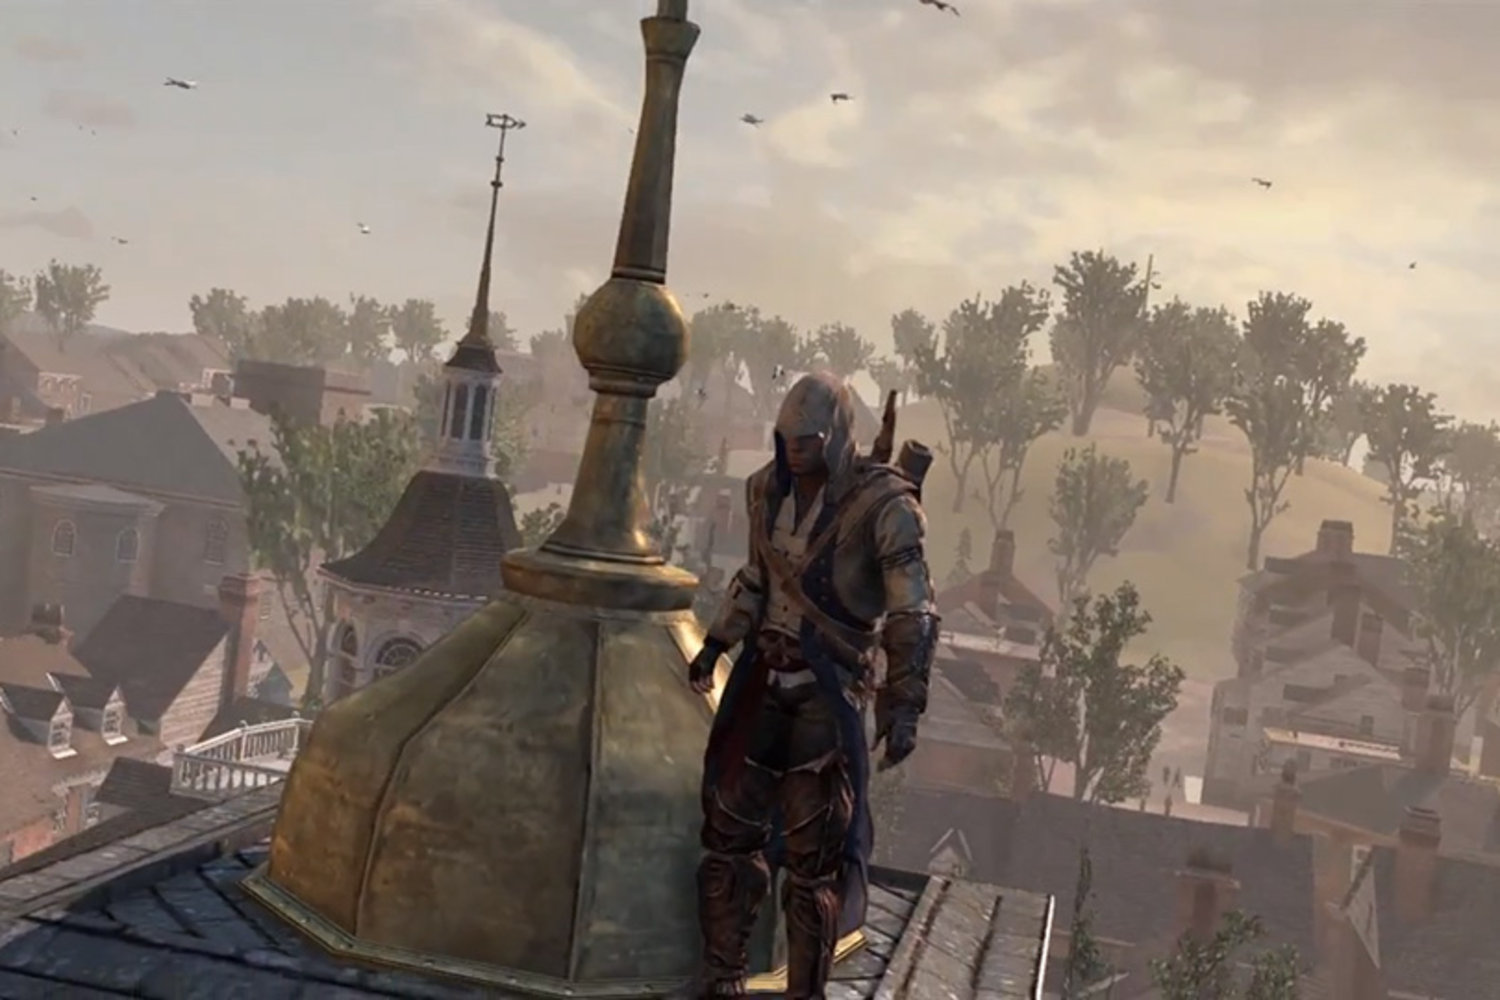 assassins-creed-3-launch-trailer_960.0_standard_1500.0.jpg